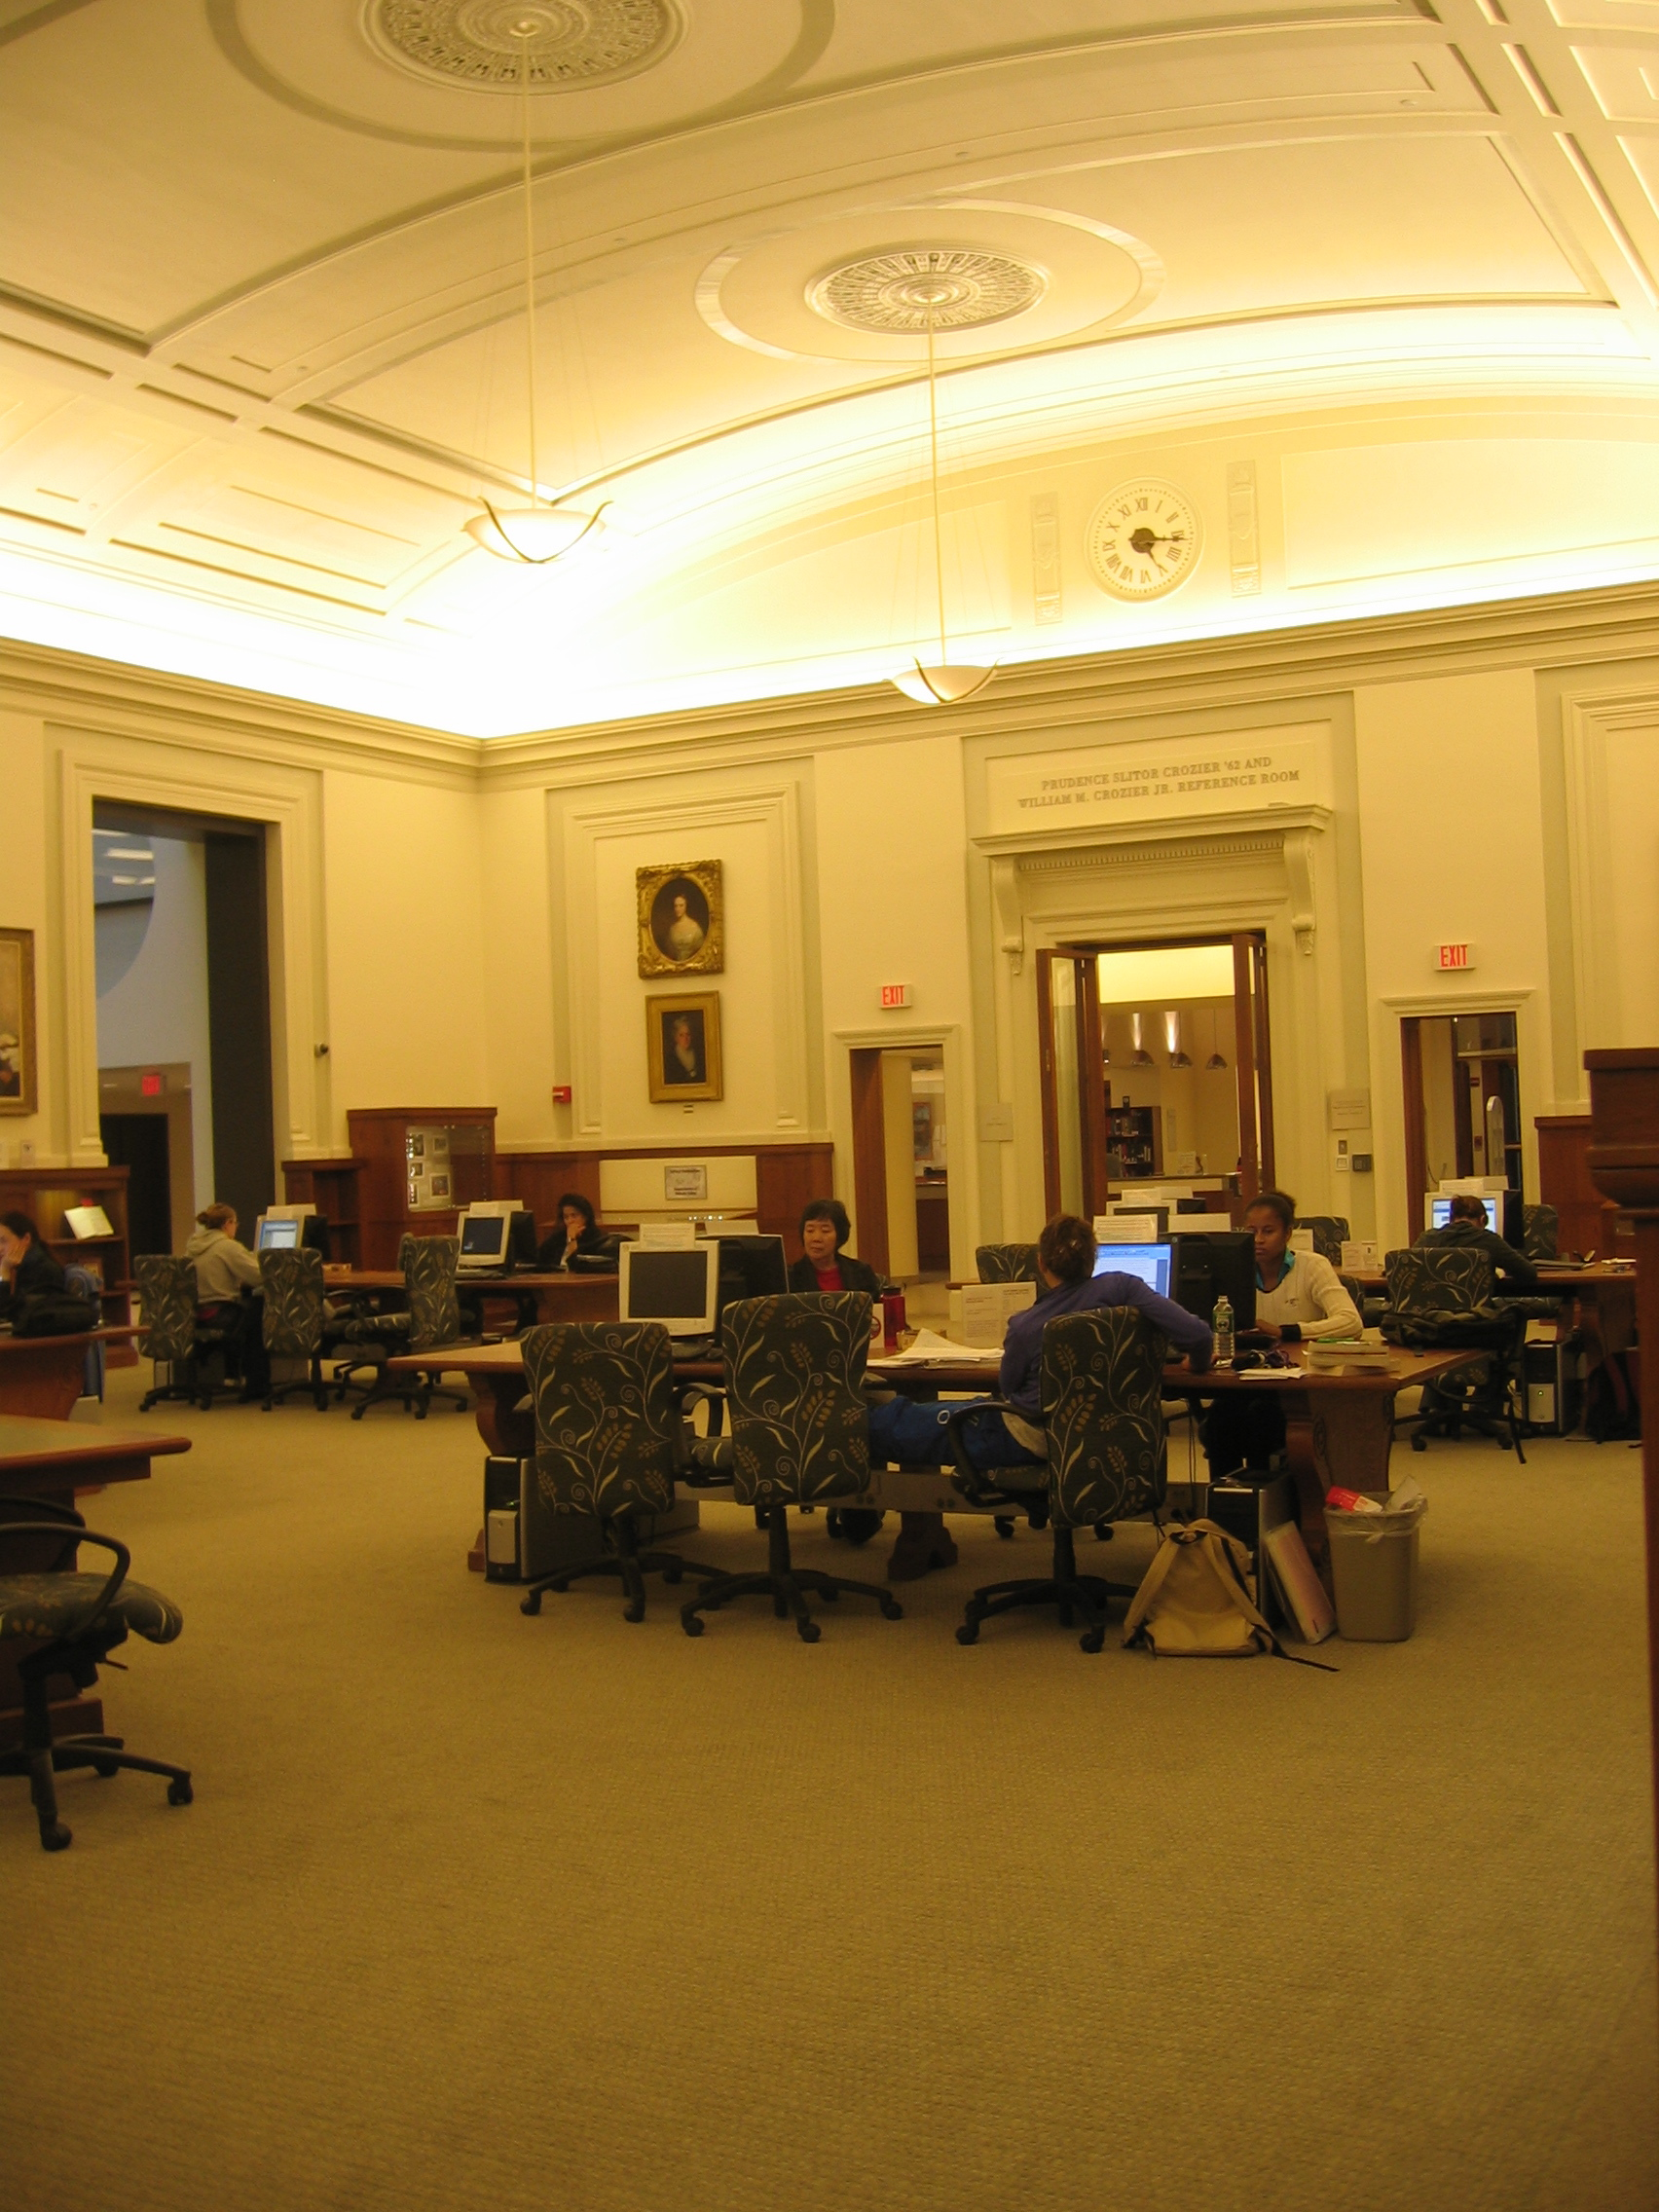 File:Wellesley College Library